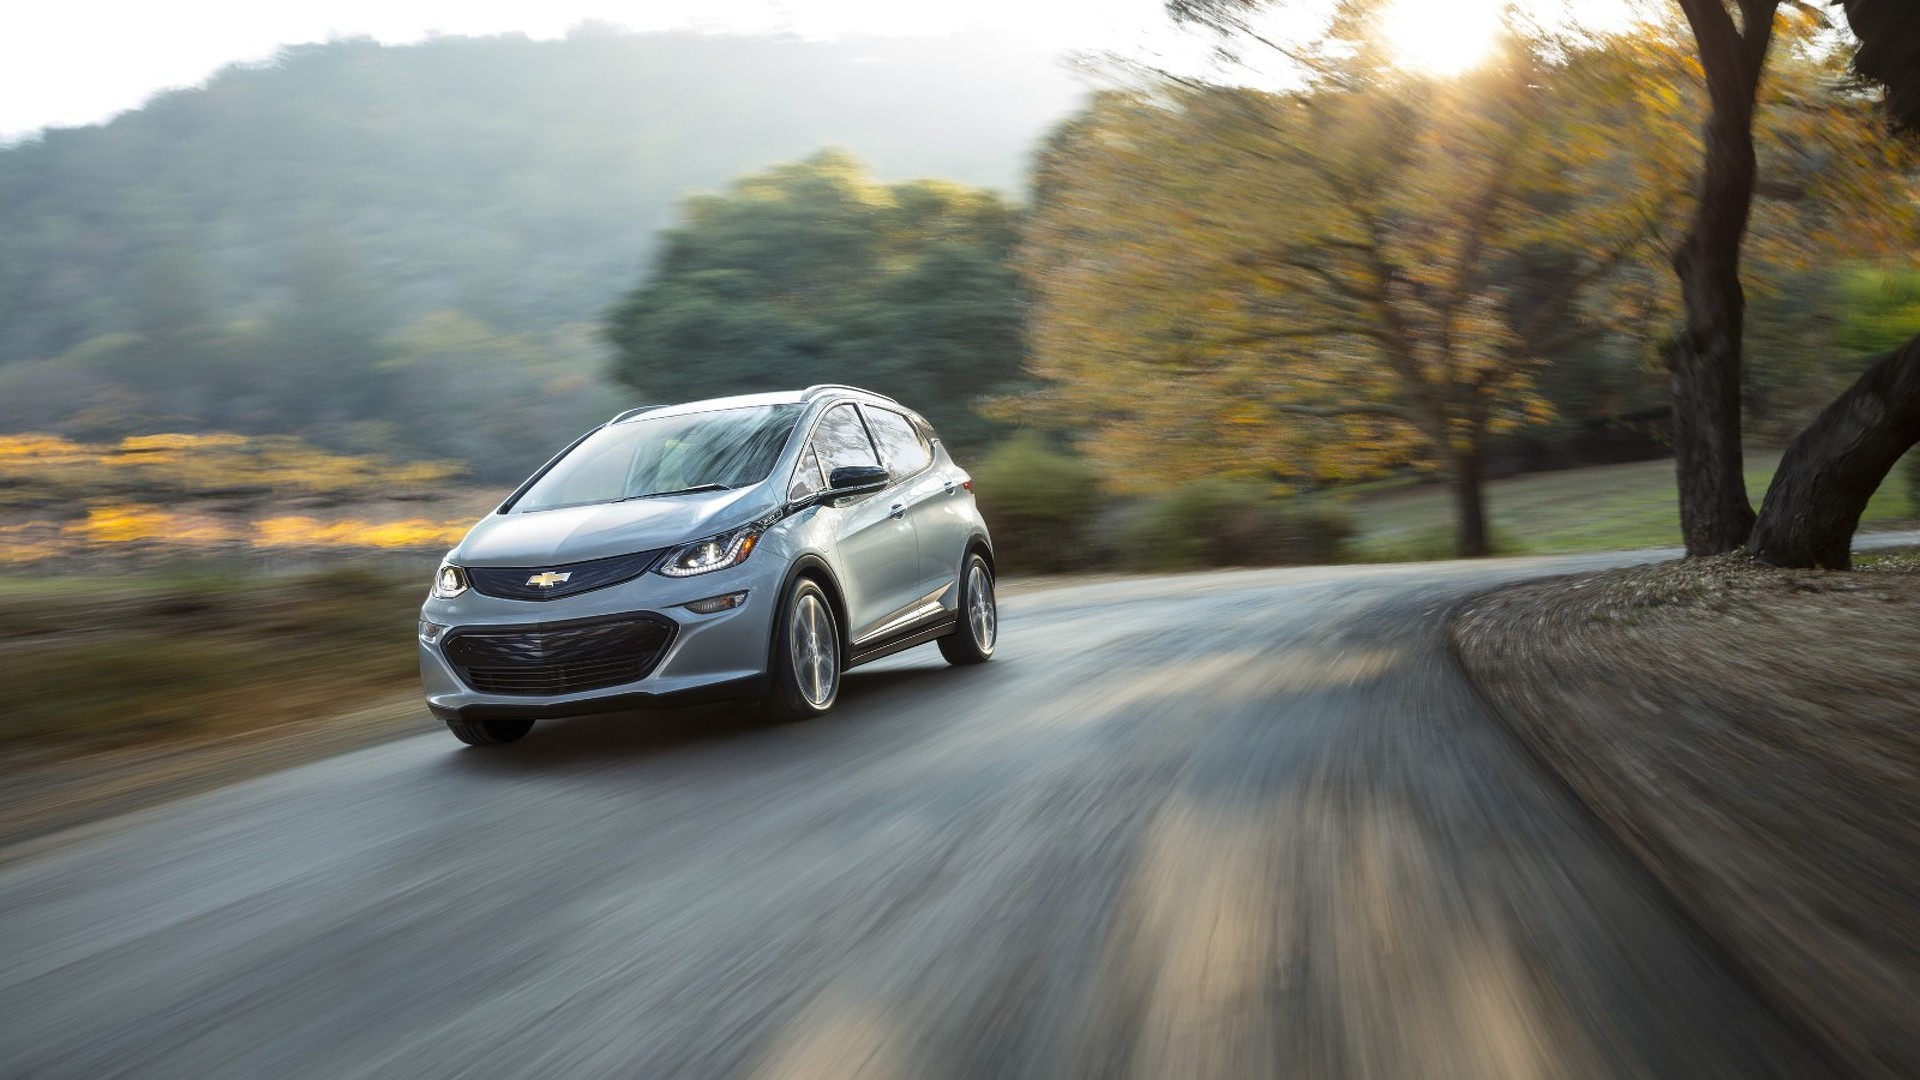 GM & Lyft to use autonomous Chevy Bolts starting next year